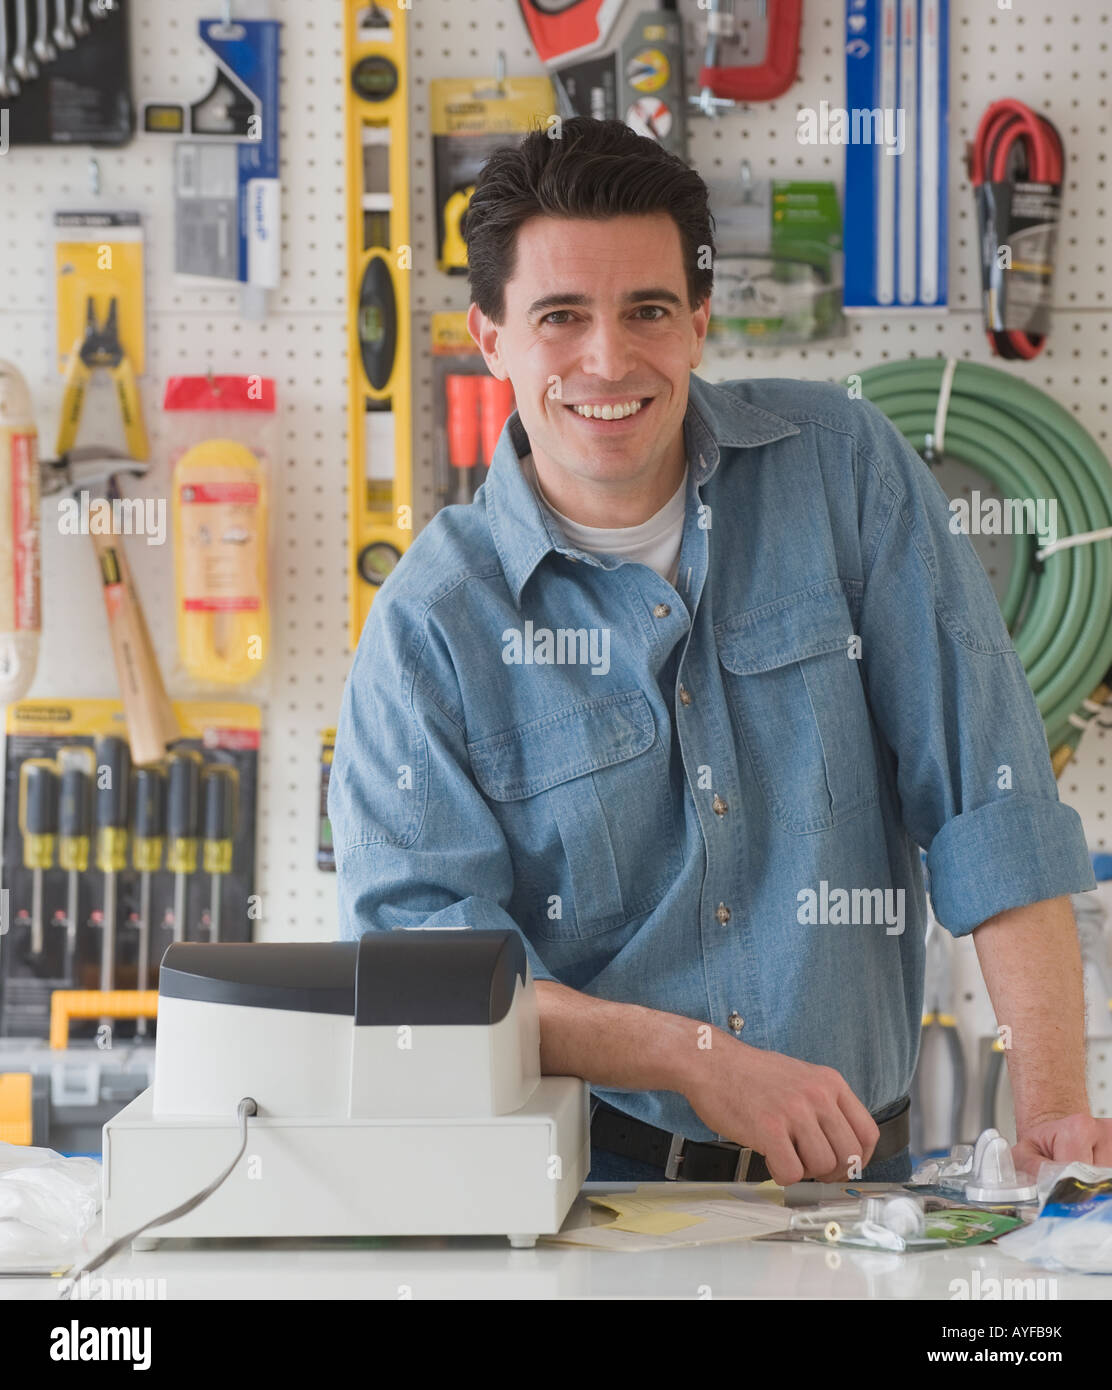 Sales clerk, counter at hardware store - Stock Image